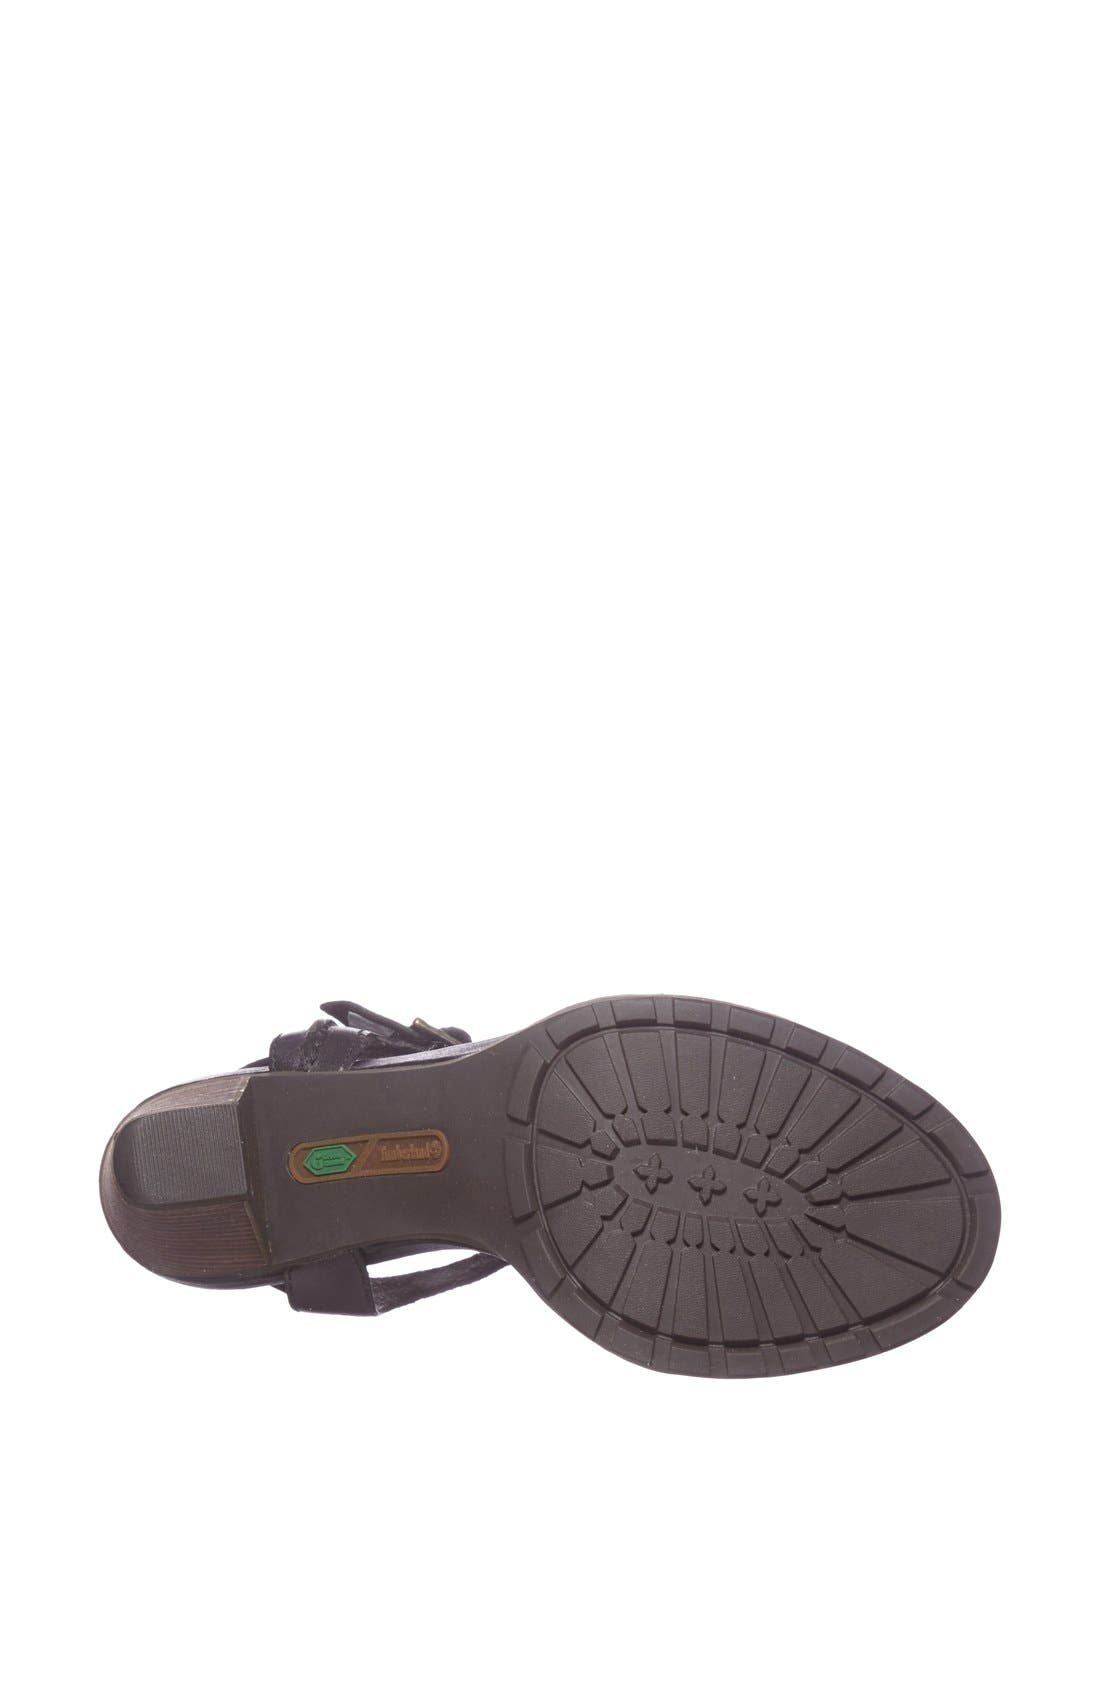 Earthkeepers<sup>®</sup> 'Stratham Heights' Sandal,                             Alternate thumbnail 3, color,                             001